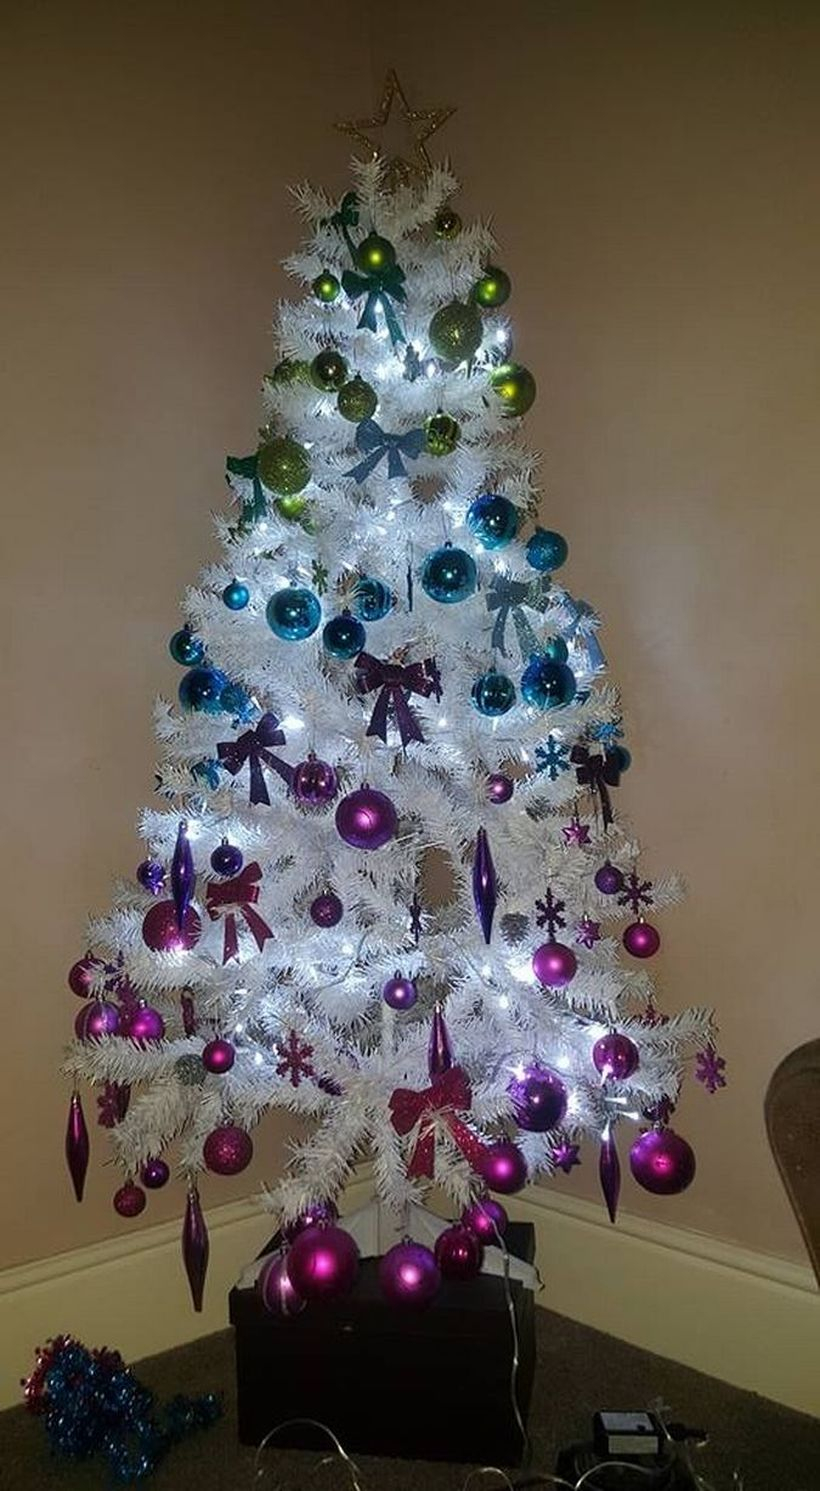 Small chrismast tree with colorful ornament and white light